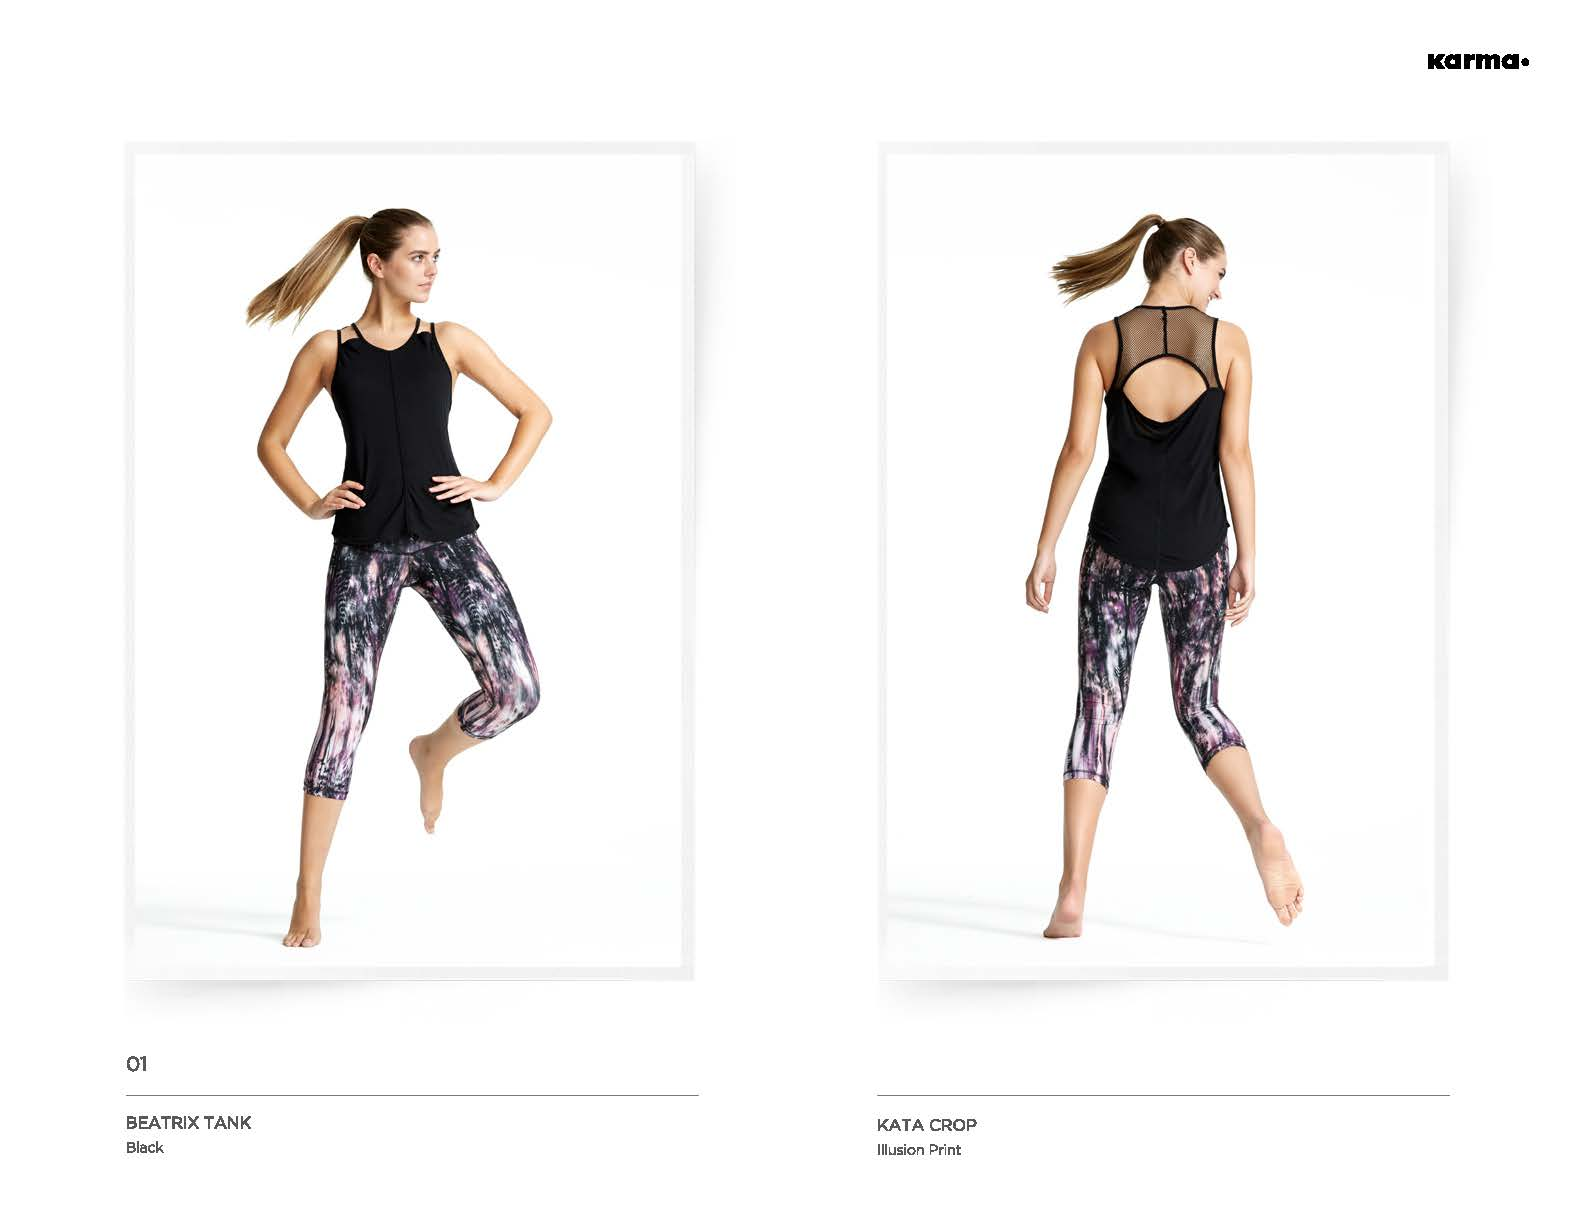 Beatrix Tank & Illusion Printed Kata Crop Outfit for workout by Karma Designer